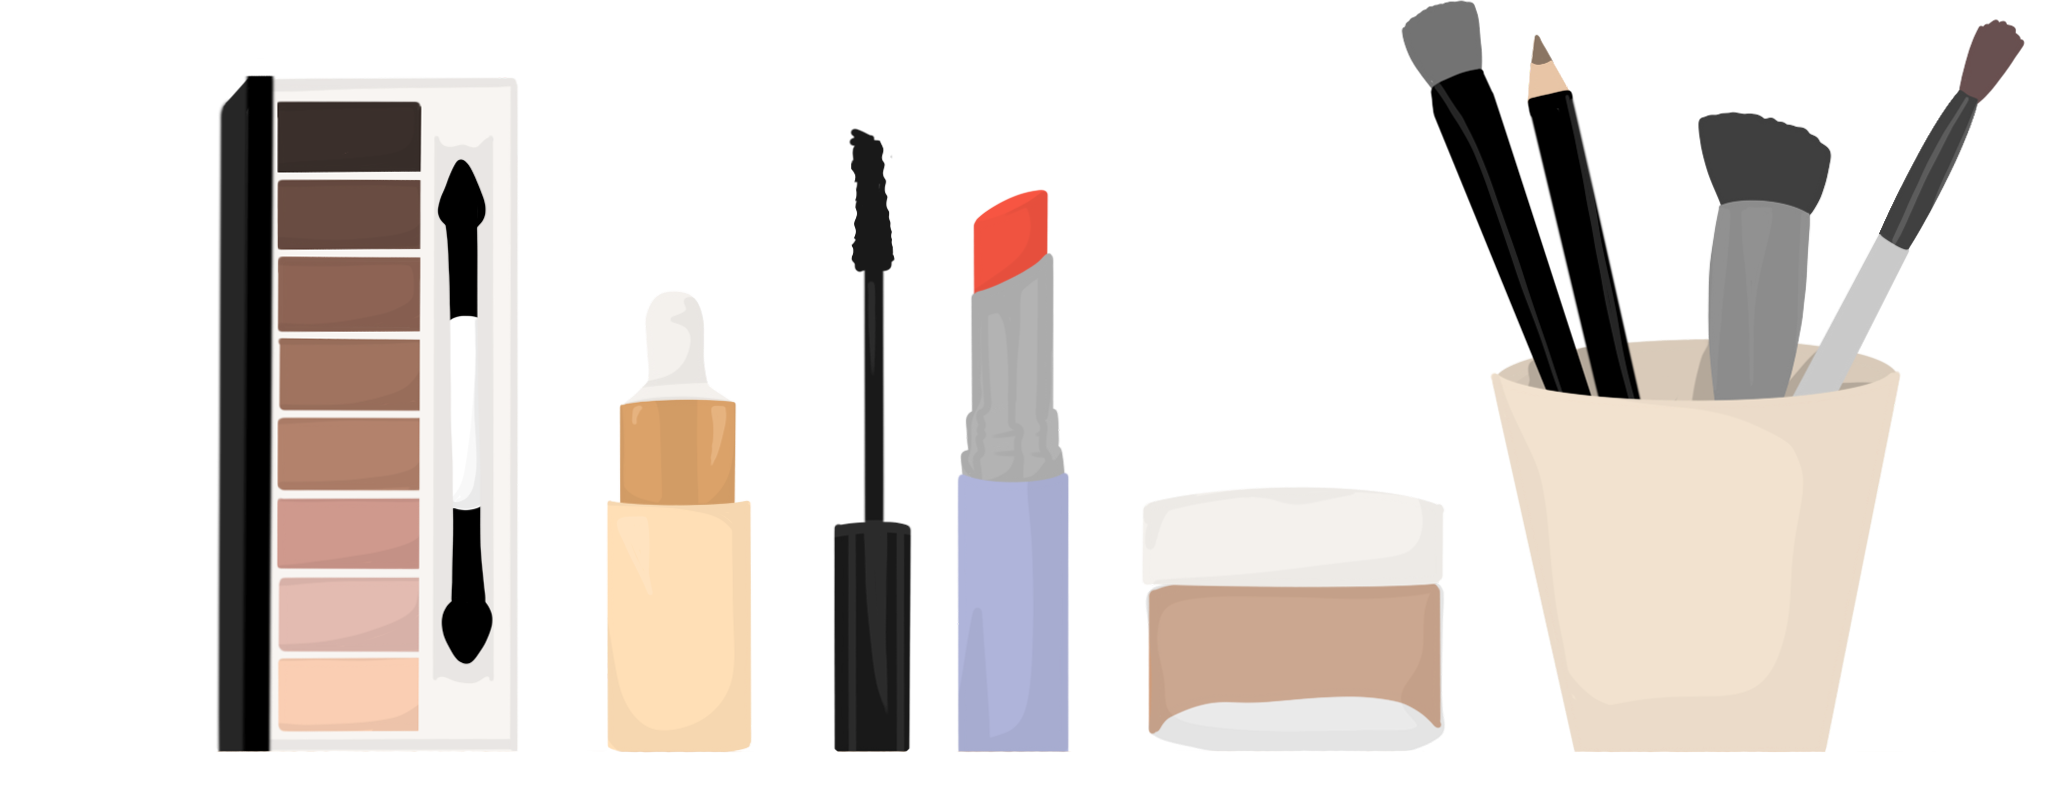 illustration of makeup items